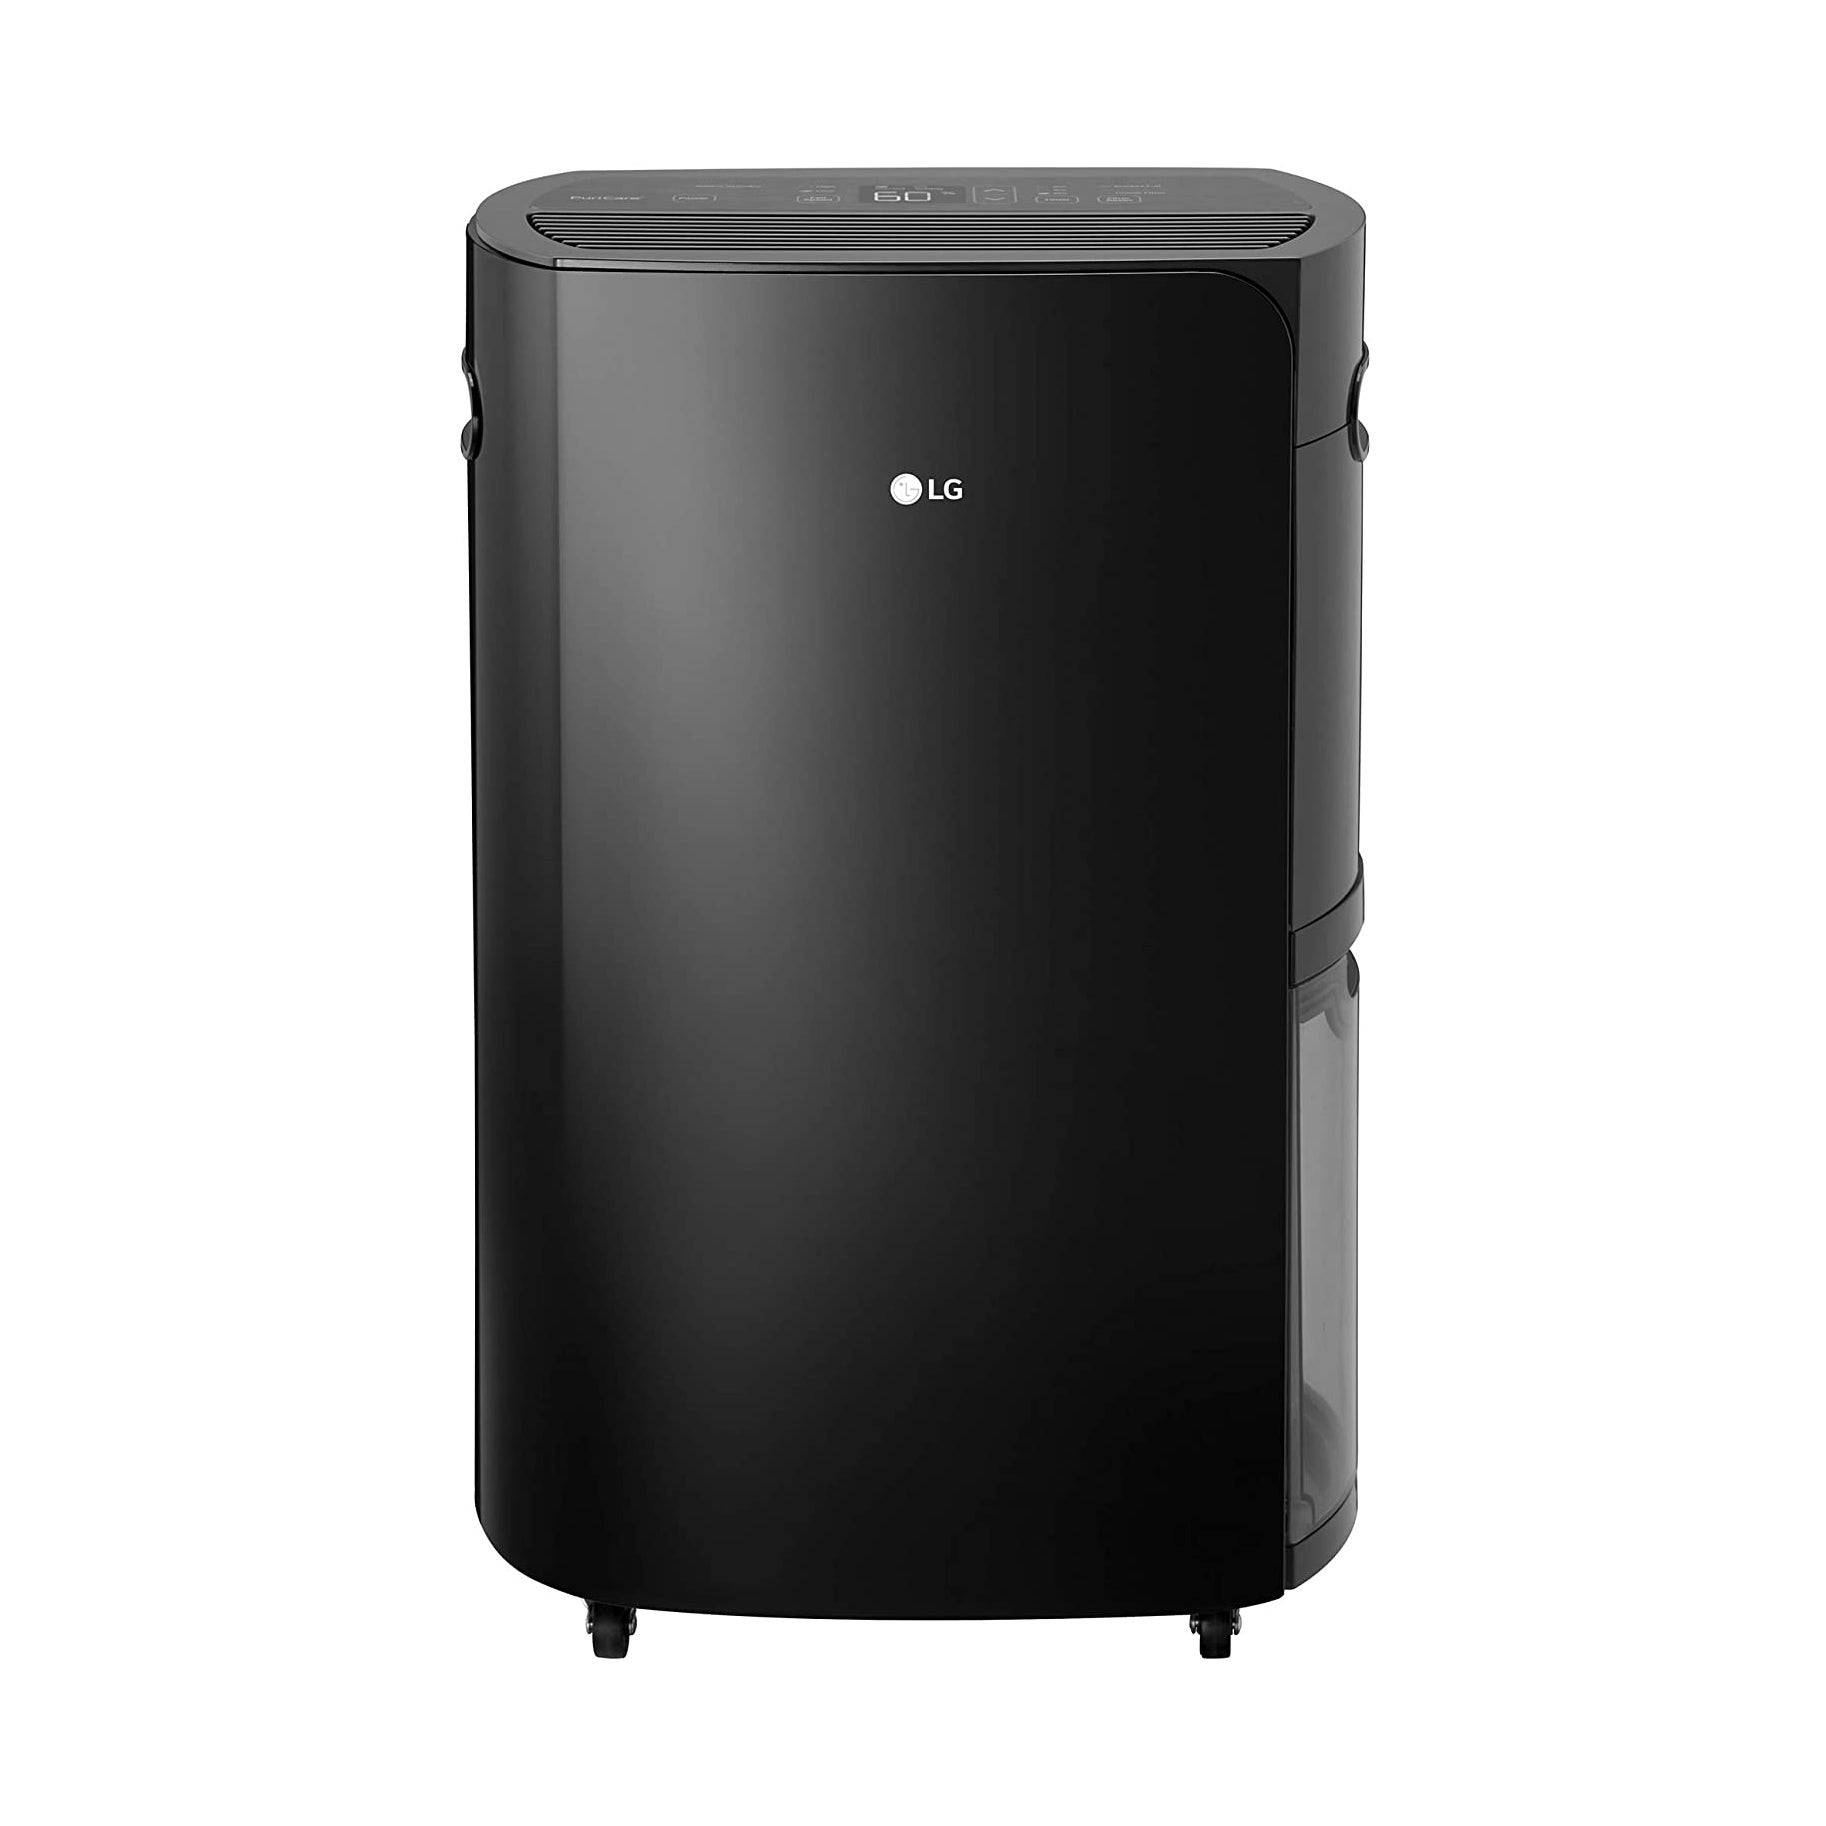 The-Best-Dehumidifiers-Option-LG-Dehumidifier-with-WiFi-PuriCare